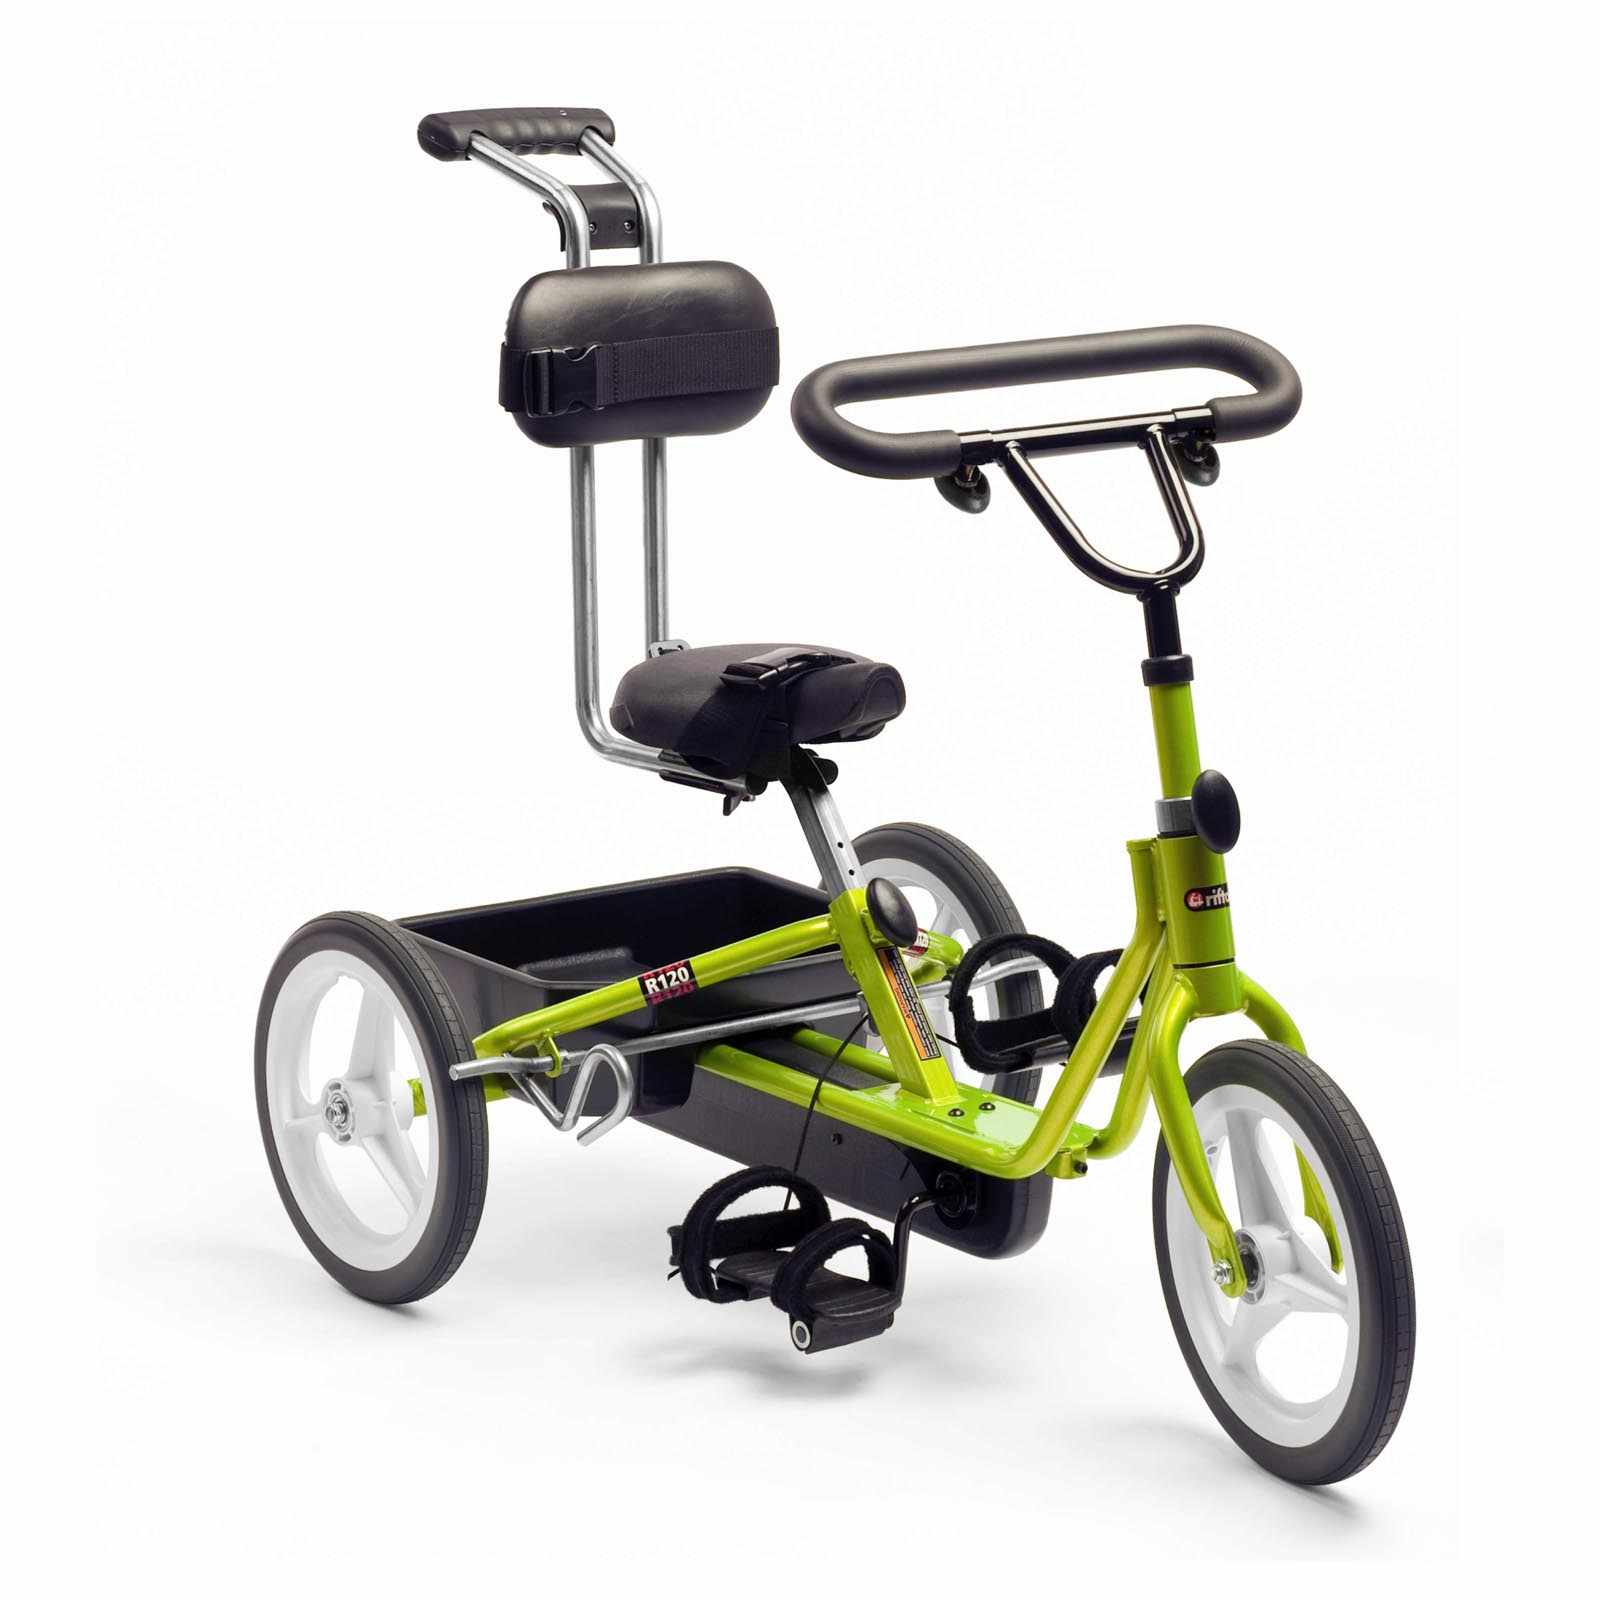 Rifton adaptive tricycle - Small